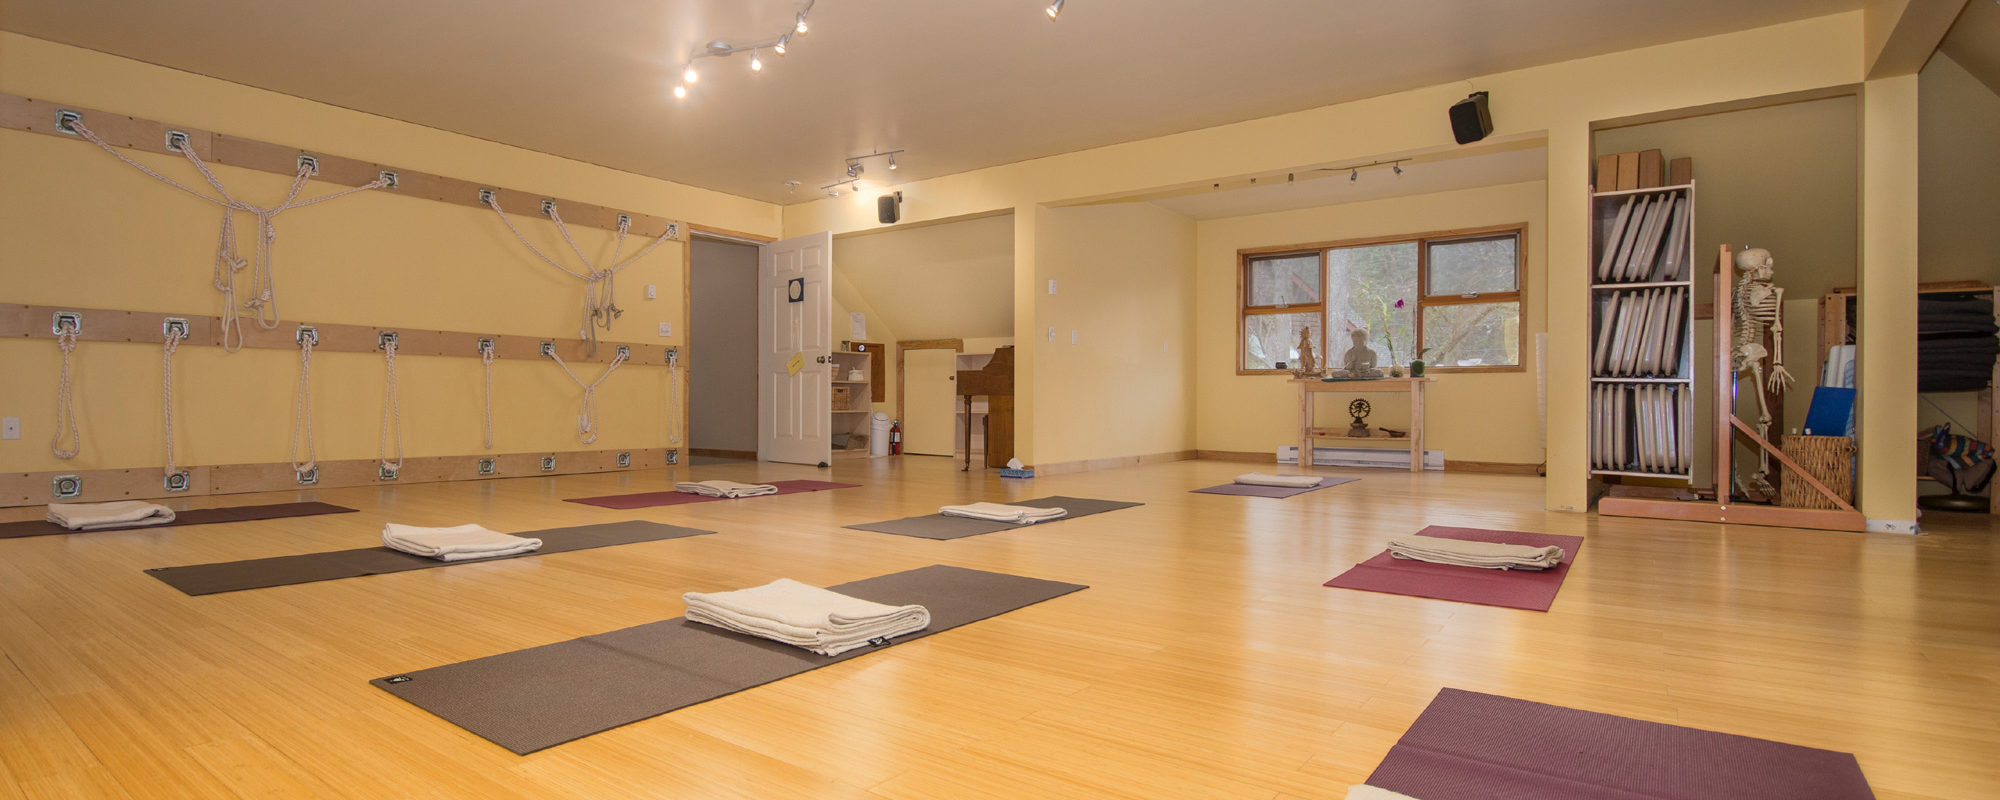 Yoga By The Sea studio interior